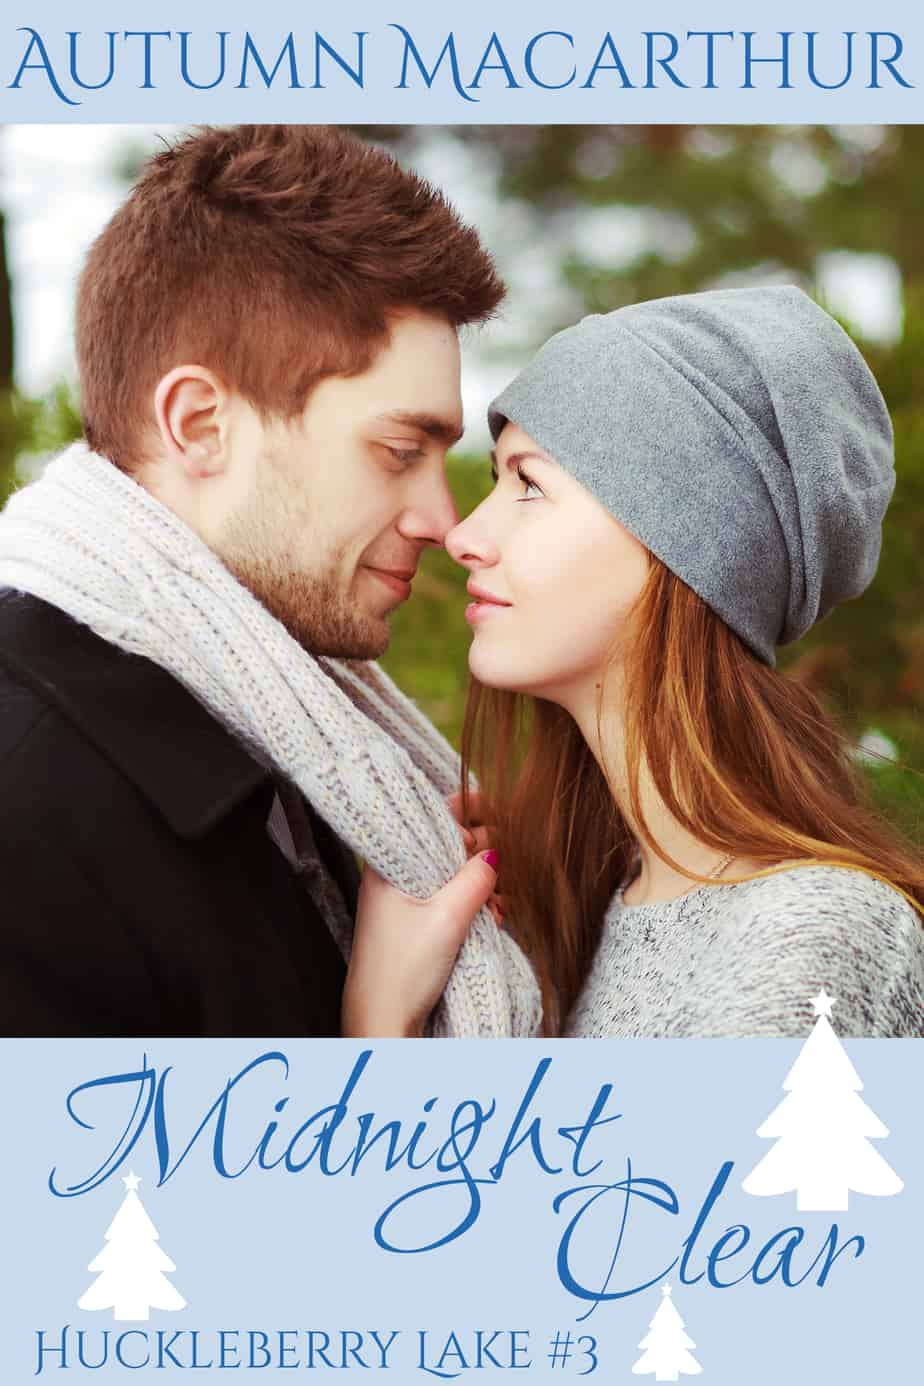 Cover image for sweet and clean Idaho set Christmas romance novella, Midnight Clear, by Christian author Autumn Macarthur